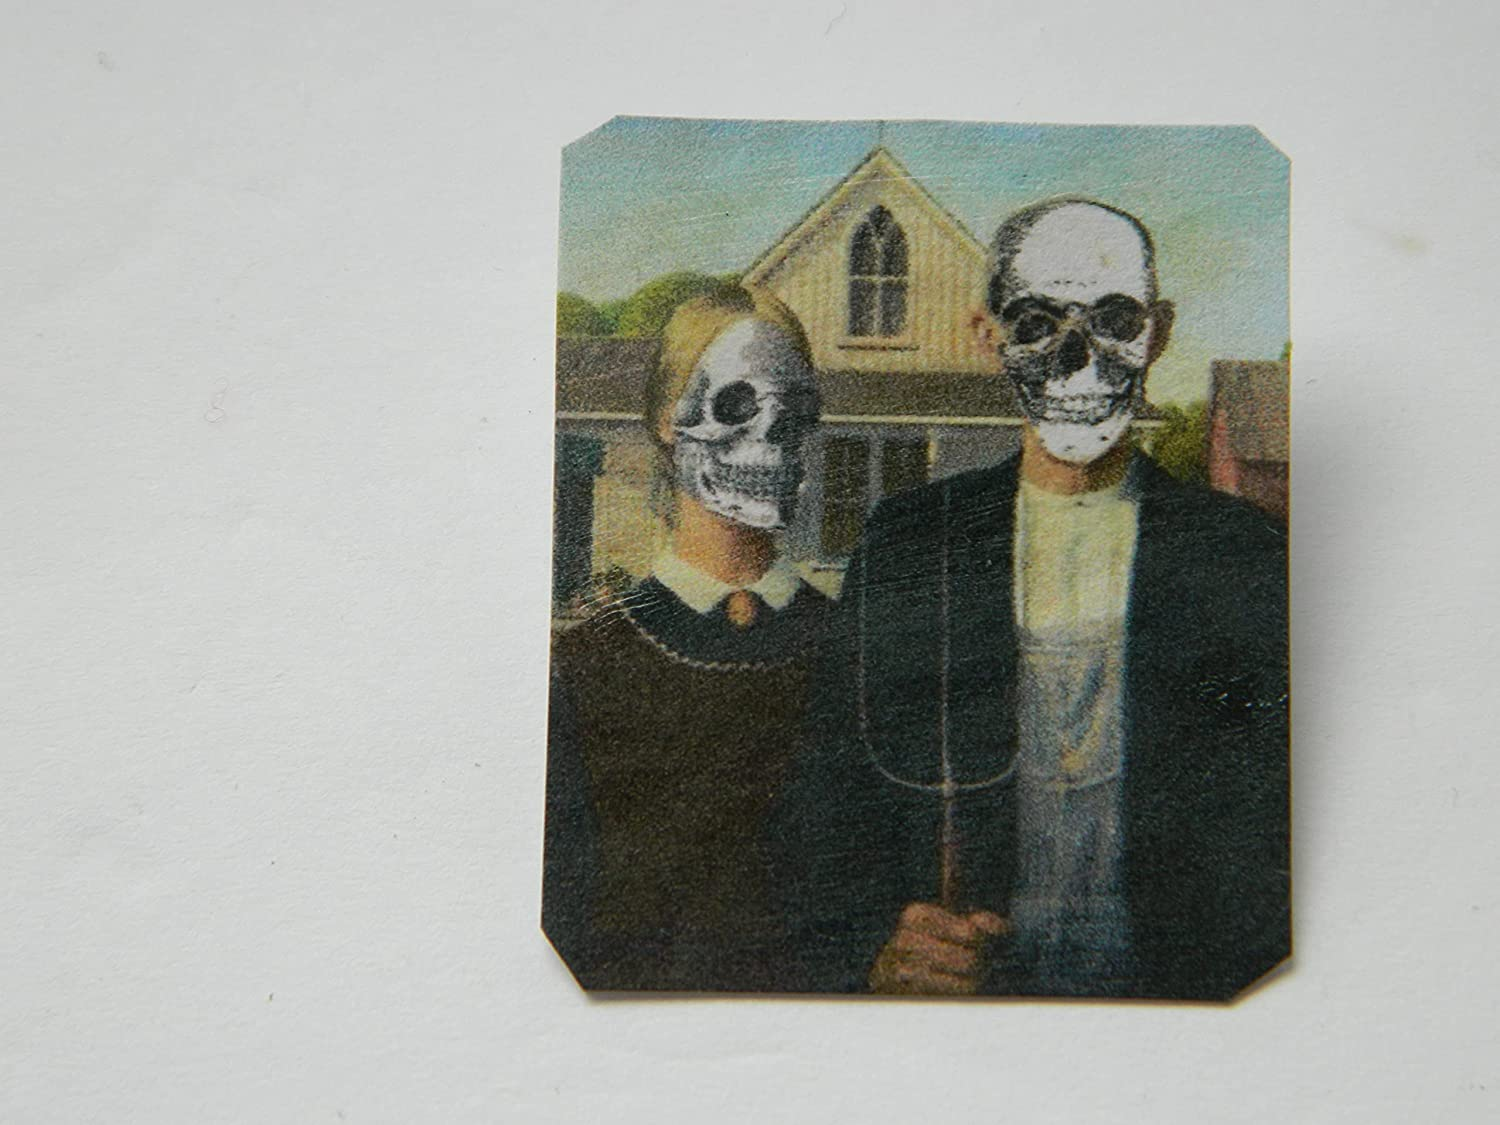 Popular Discount mail order Lapel Pin American Gothic Homage Grant Gothi Halloween Wood 1930